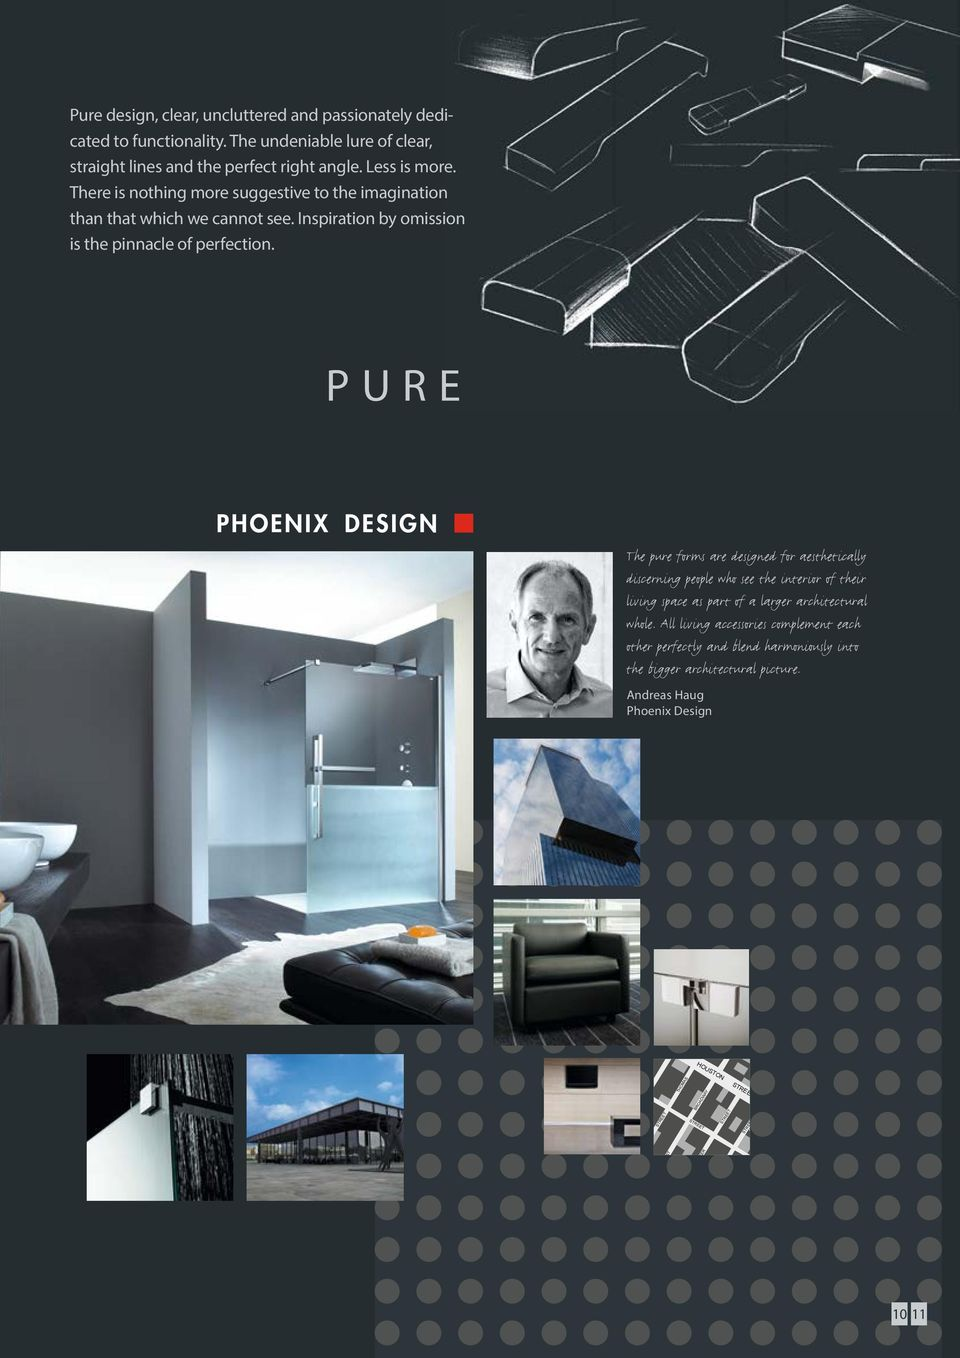 PURE The pure forms are designed for aesthetically discerning people who see the interior of their living space as part of a larger architectural whole.